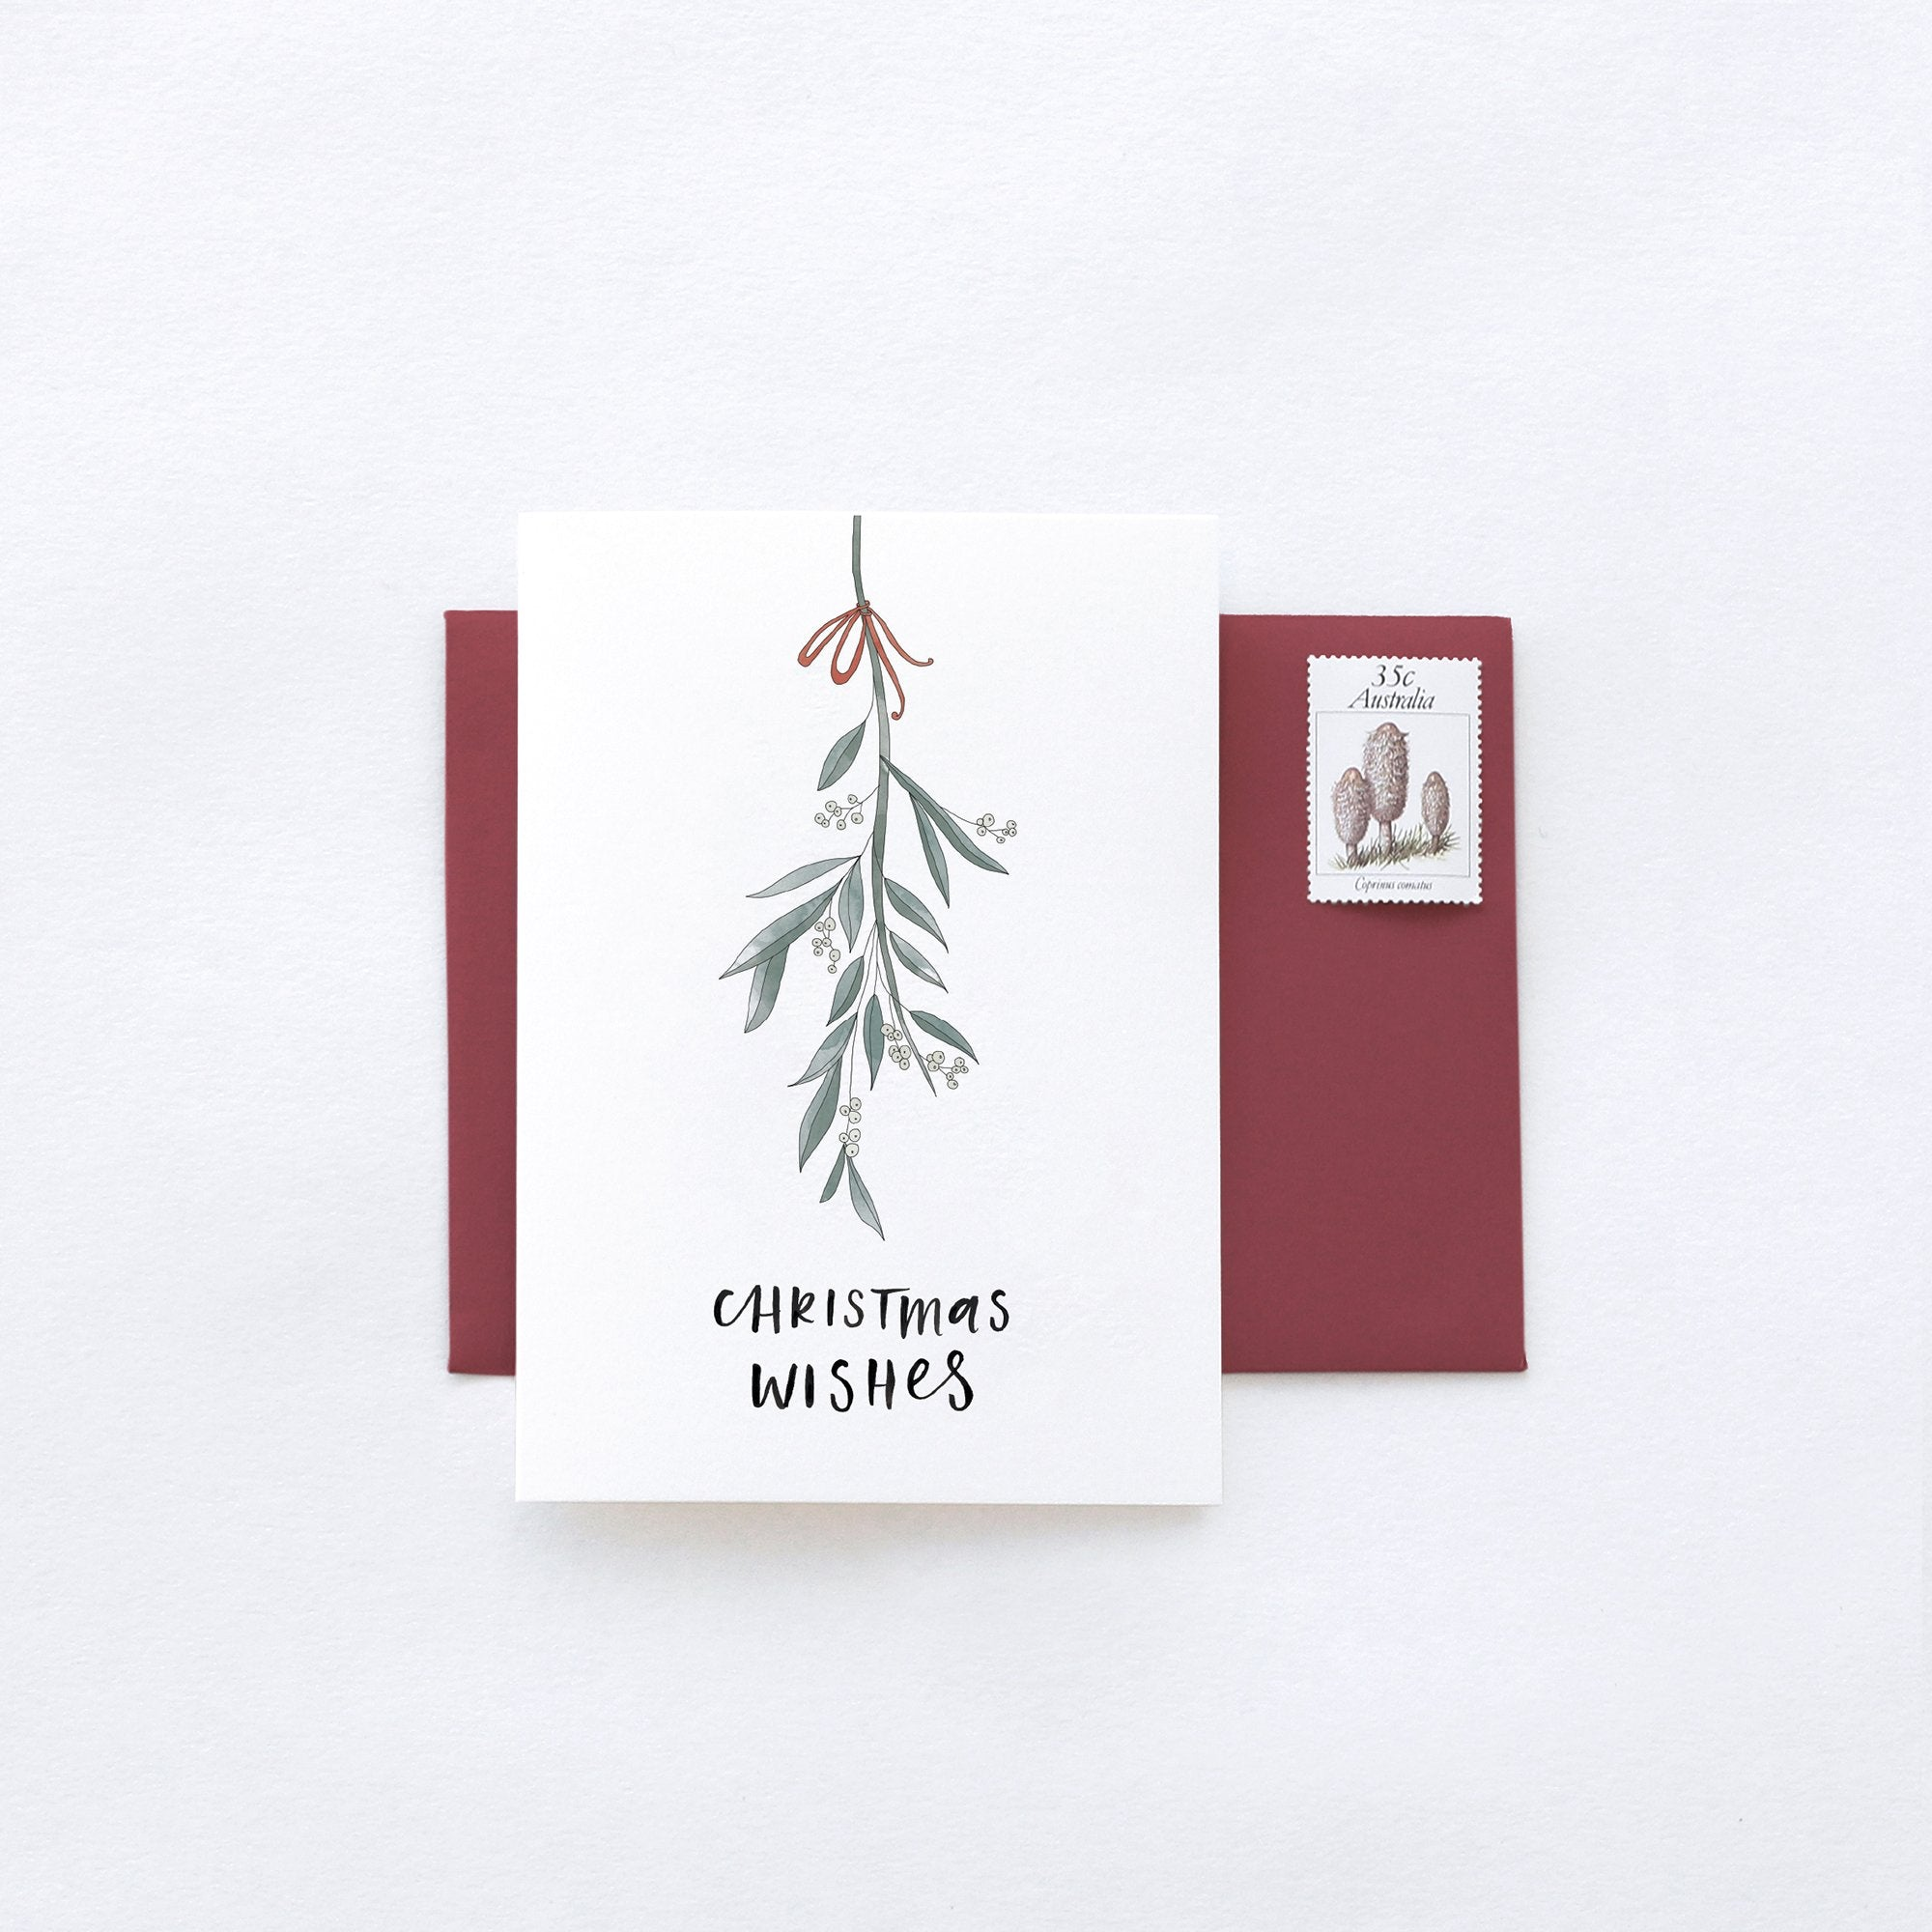 IN THE DAYLIGHT - CHRISTMAS MISTLETOE - GREETING CARD - Tempted Kensington